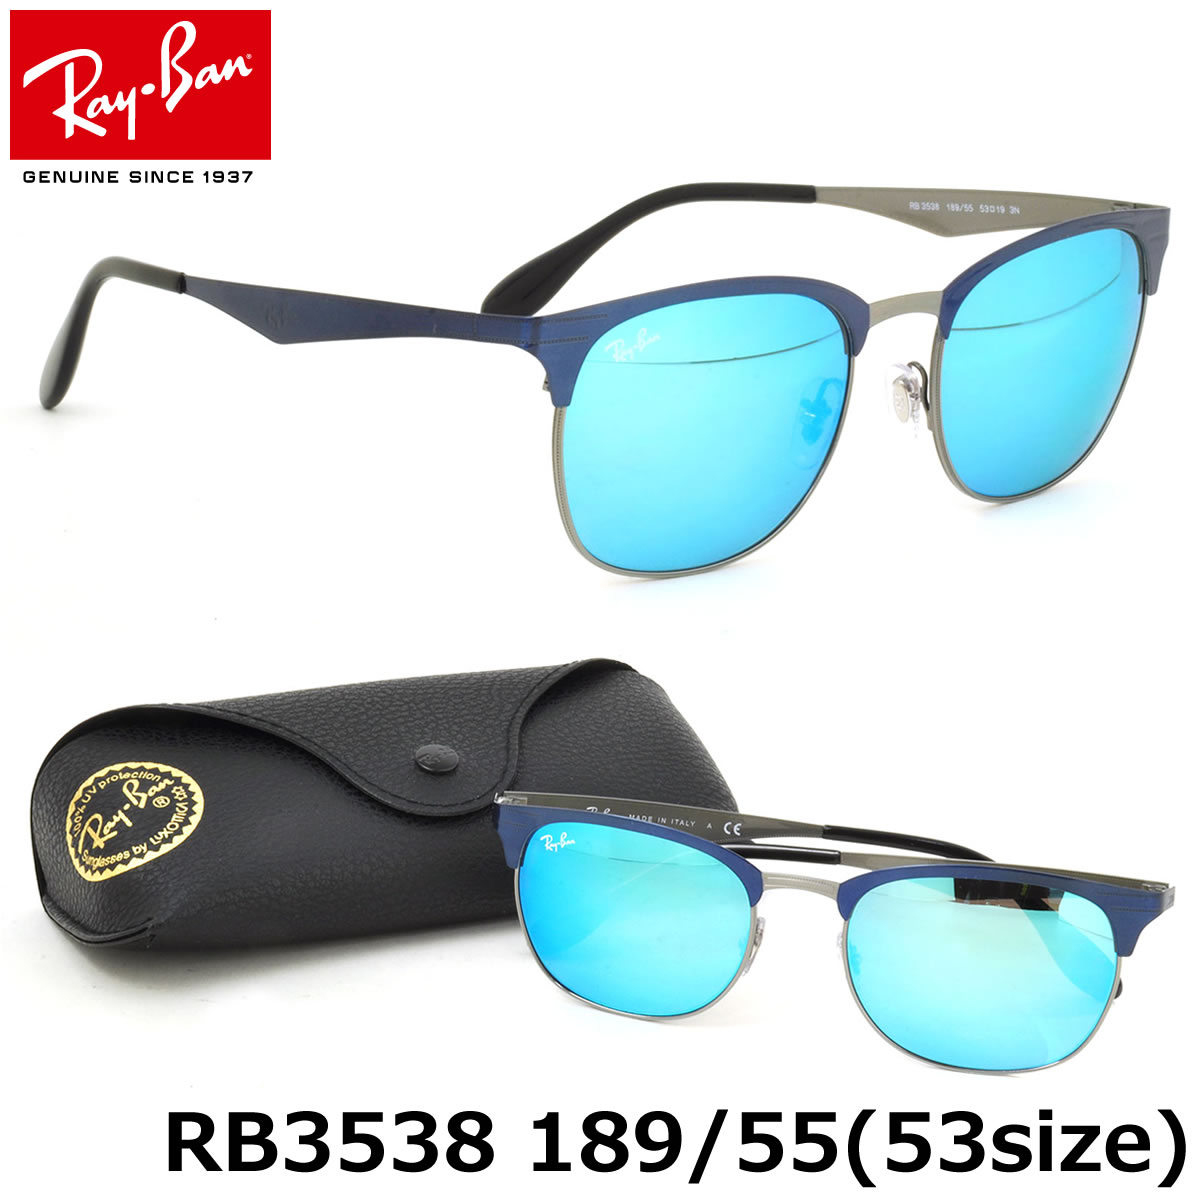 Optical Shop Thats | Rakuten Global Market: Ray-Ban Sunglasses ...